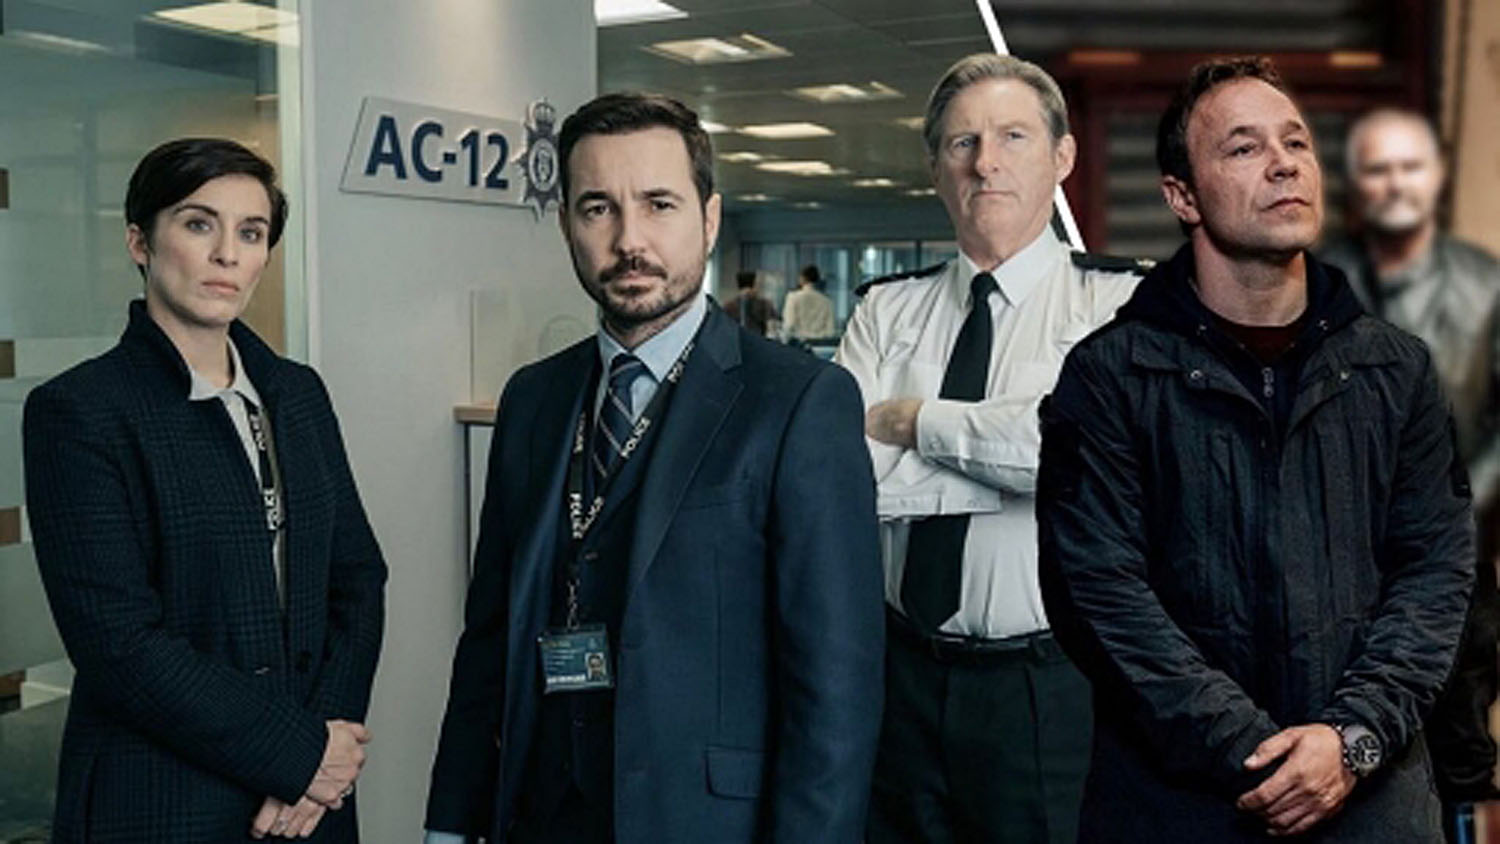 BBC1 orders legal drama from Line of Duty producer